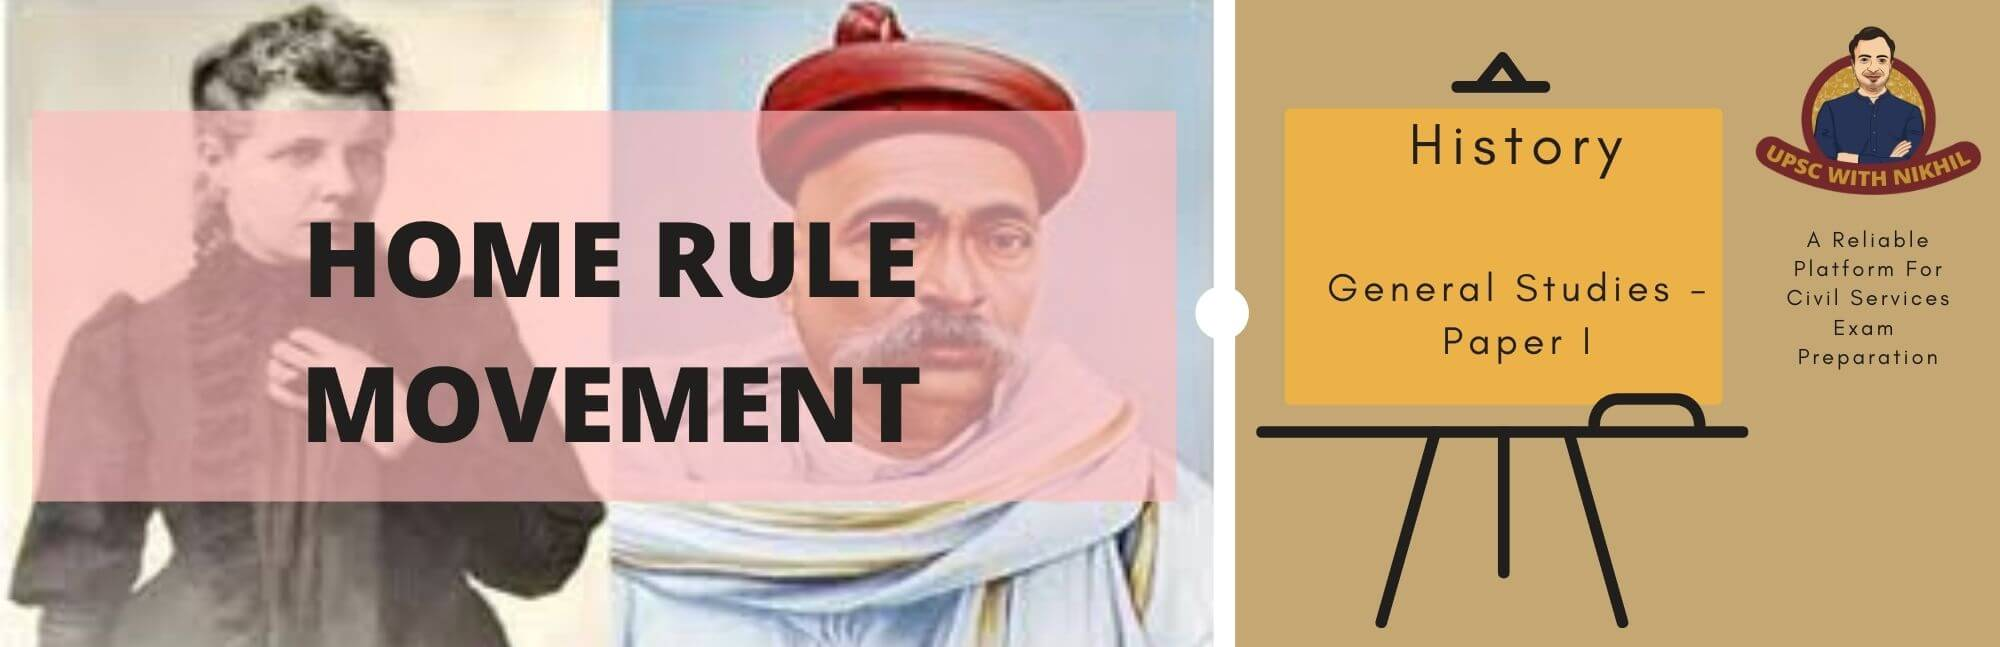 Home Rule Movement